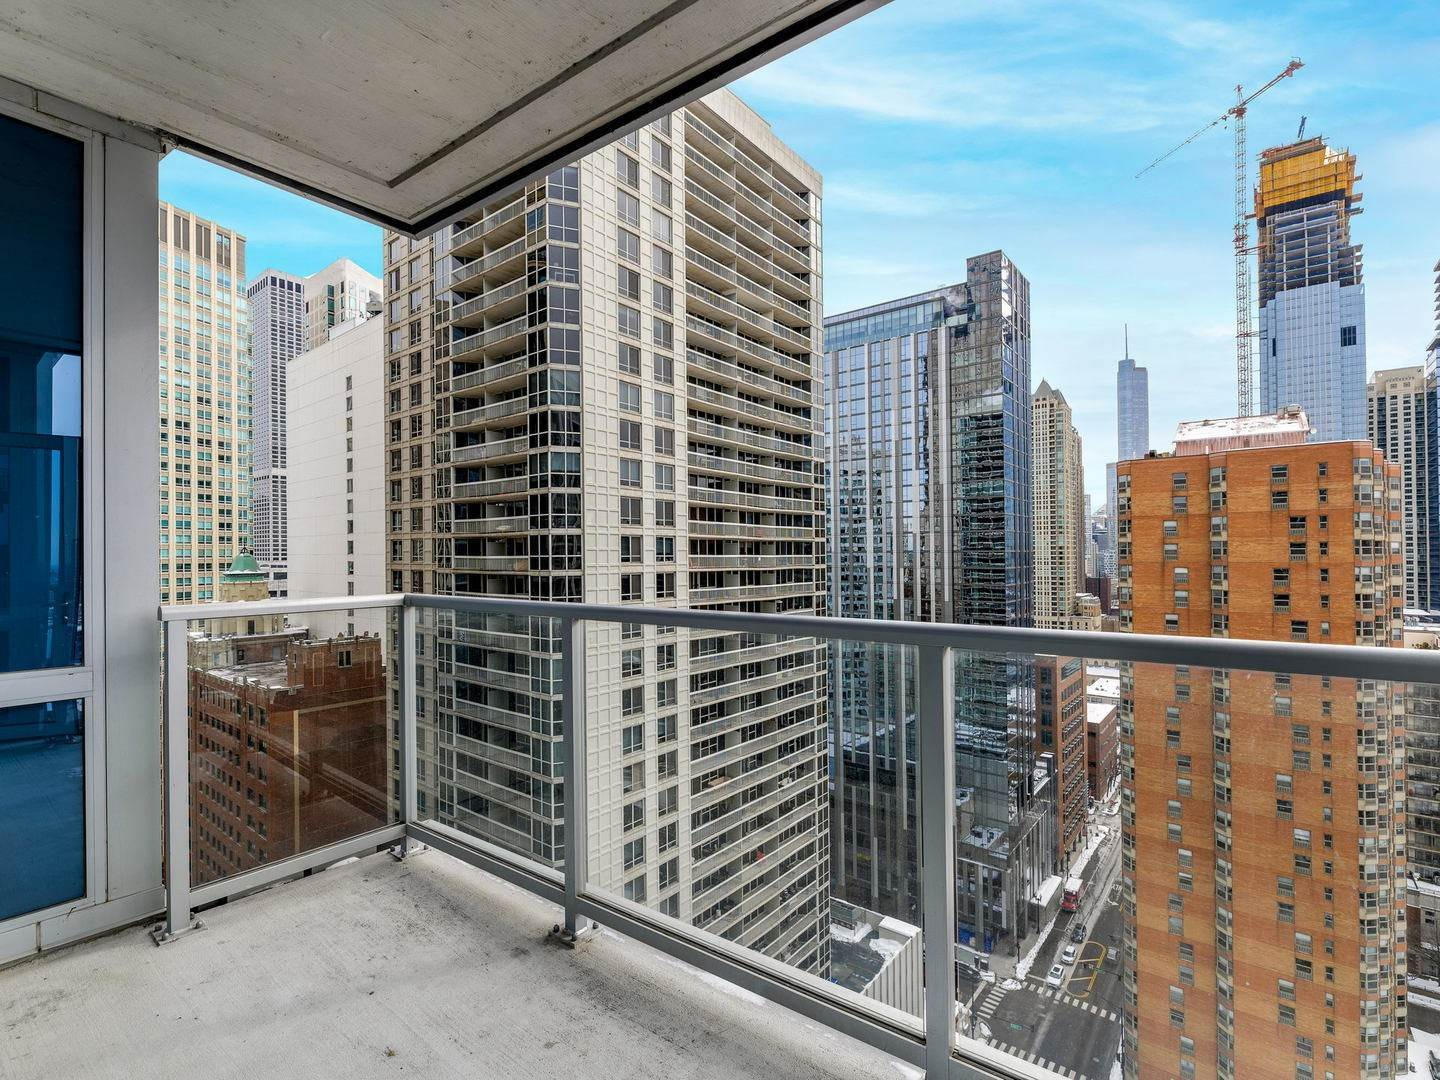 19. Residential Lease at Rush and Division, Chicago, Illinois, 60610 United States